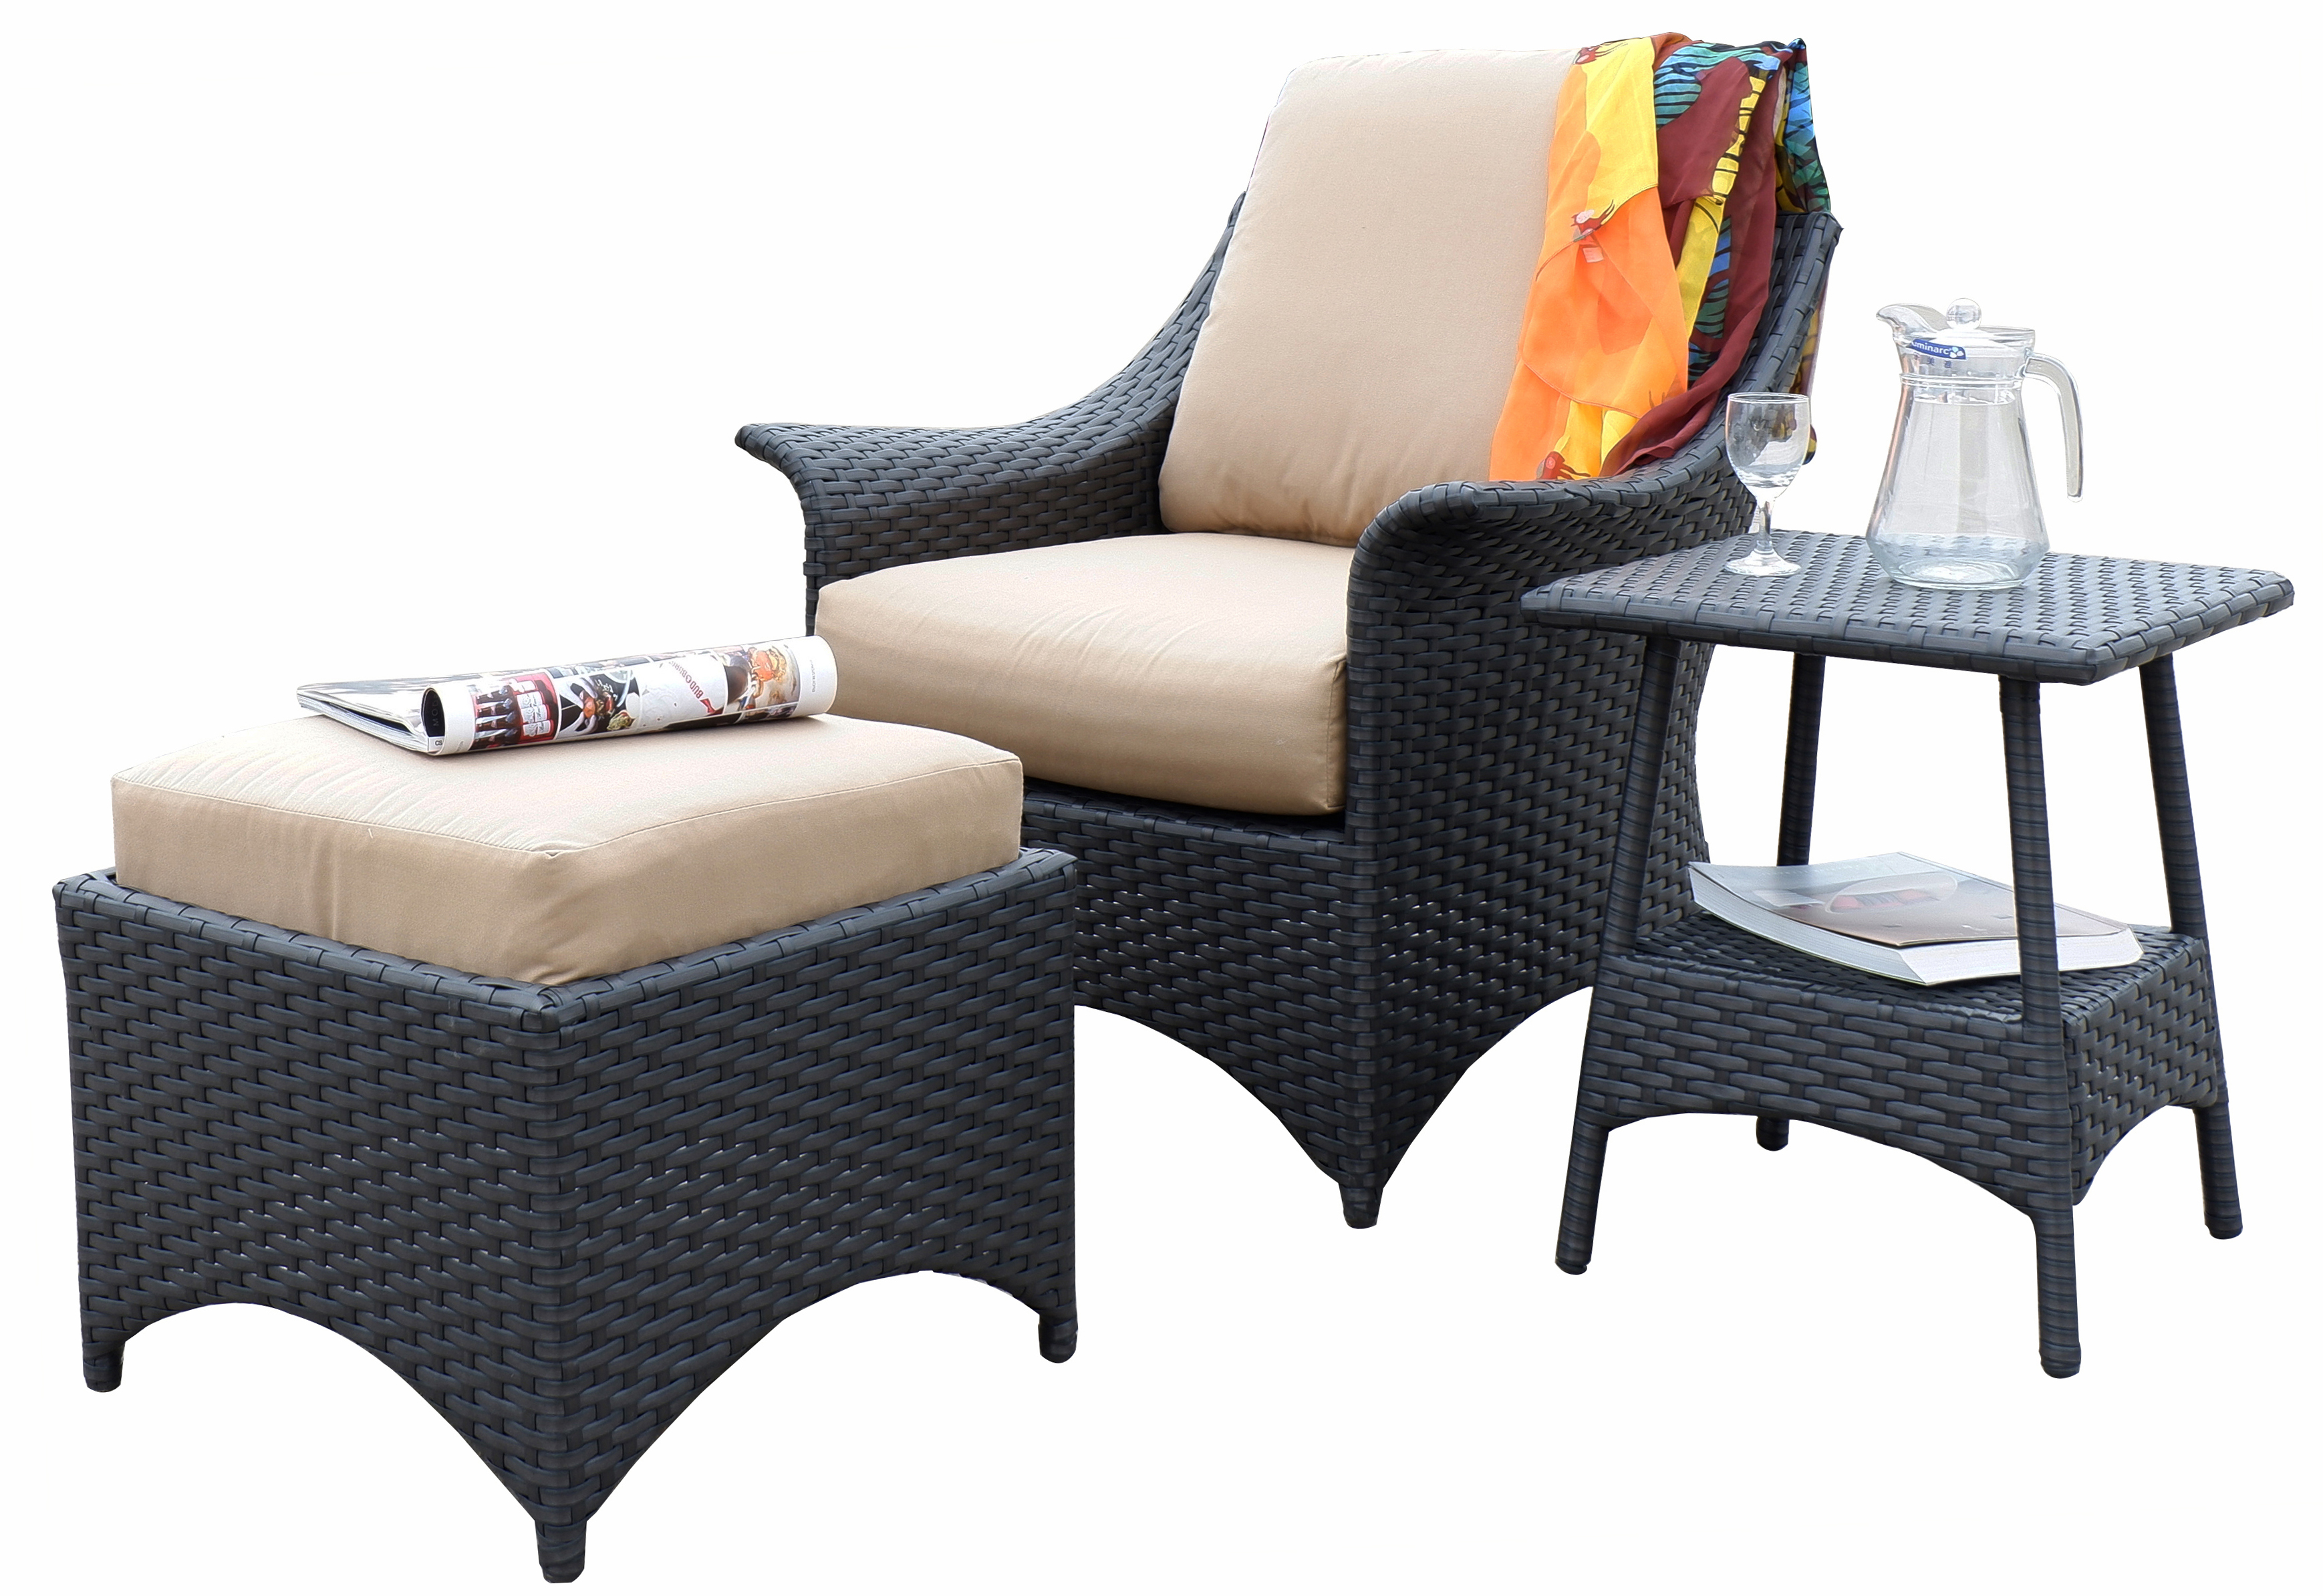 Arcadia 3 Piece Deep Seating Set Outdoor Patio Furniture Wicker Resin Rattan Club Chair Ottoman Side Table Waystock